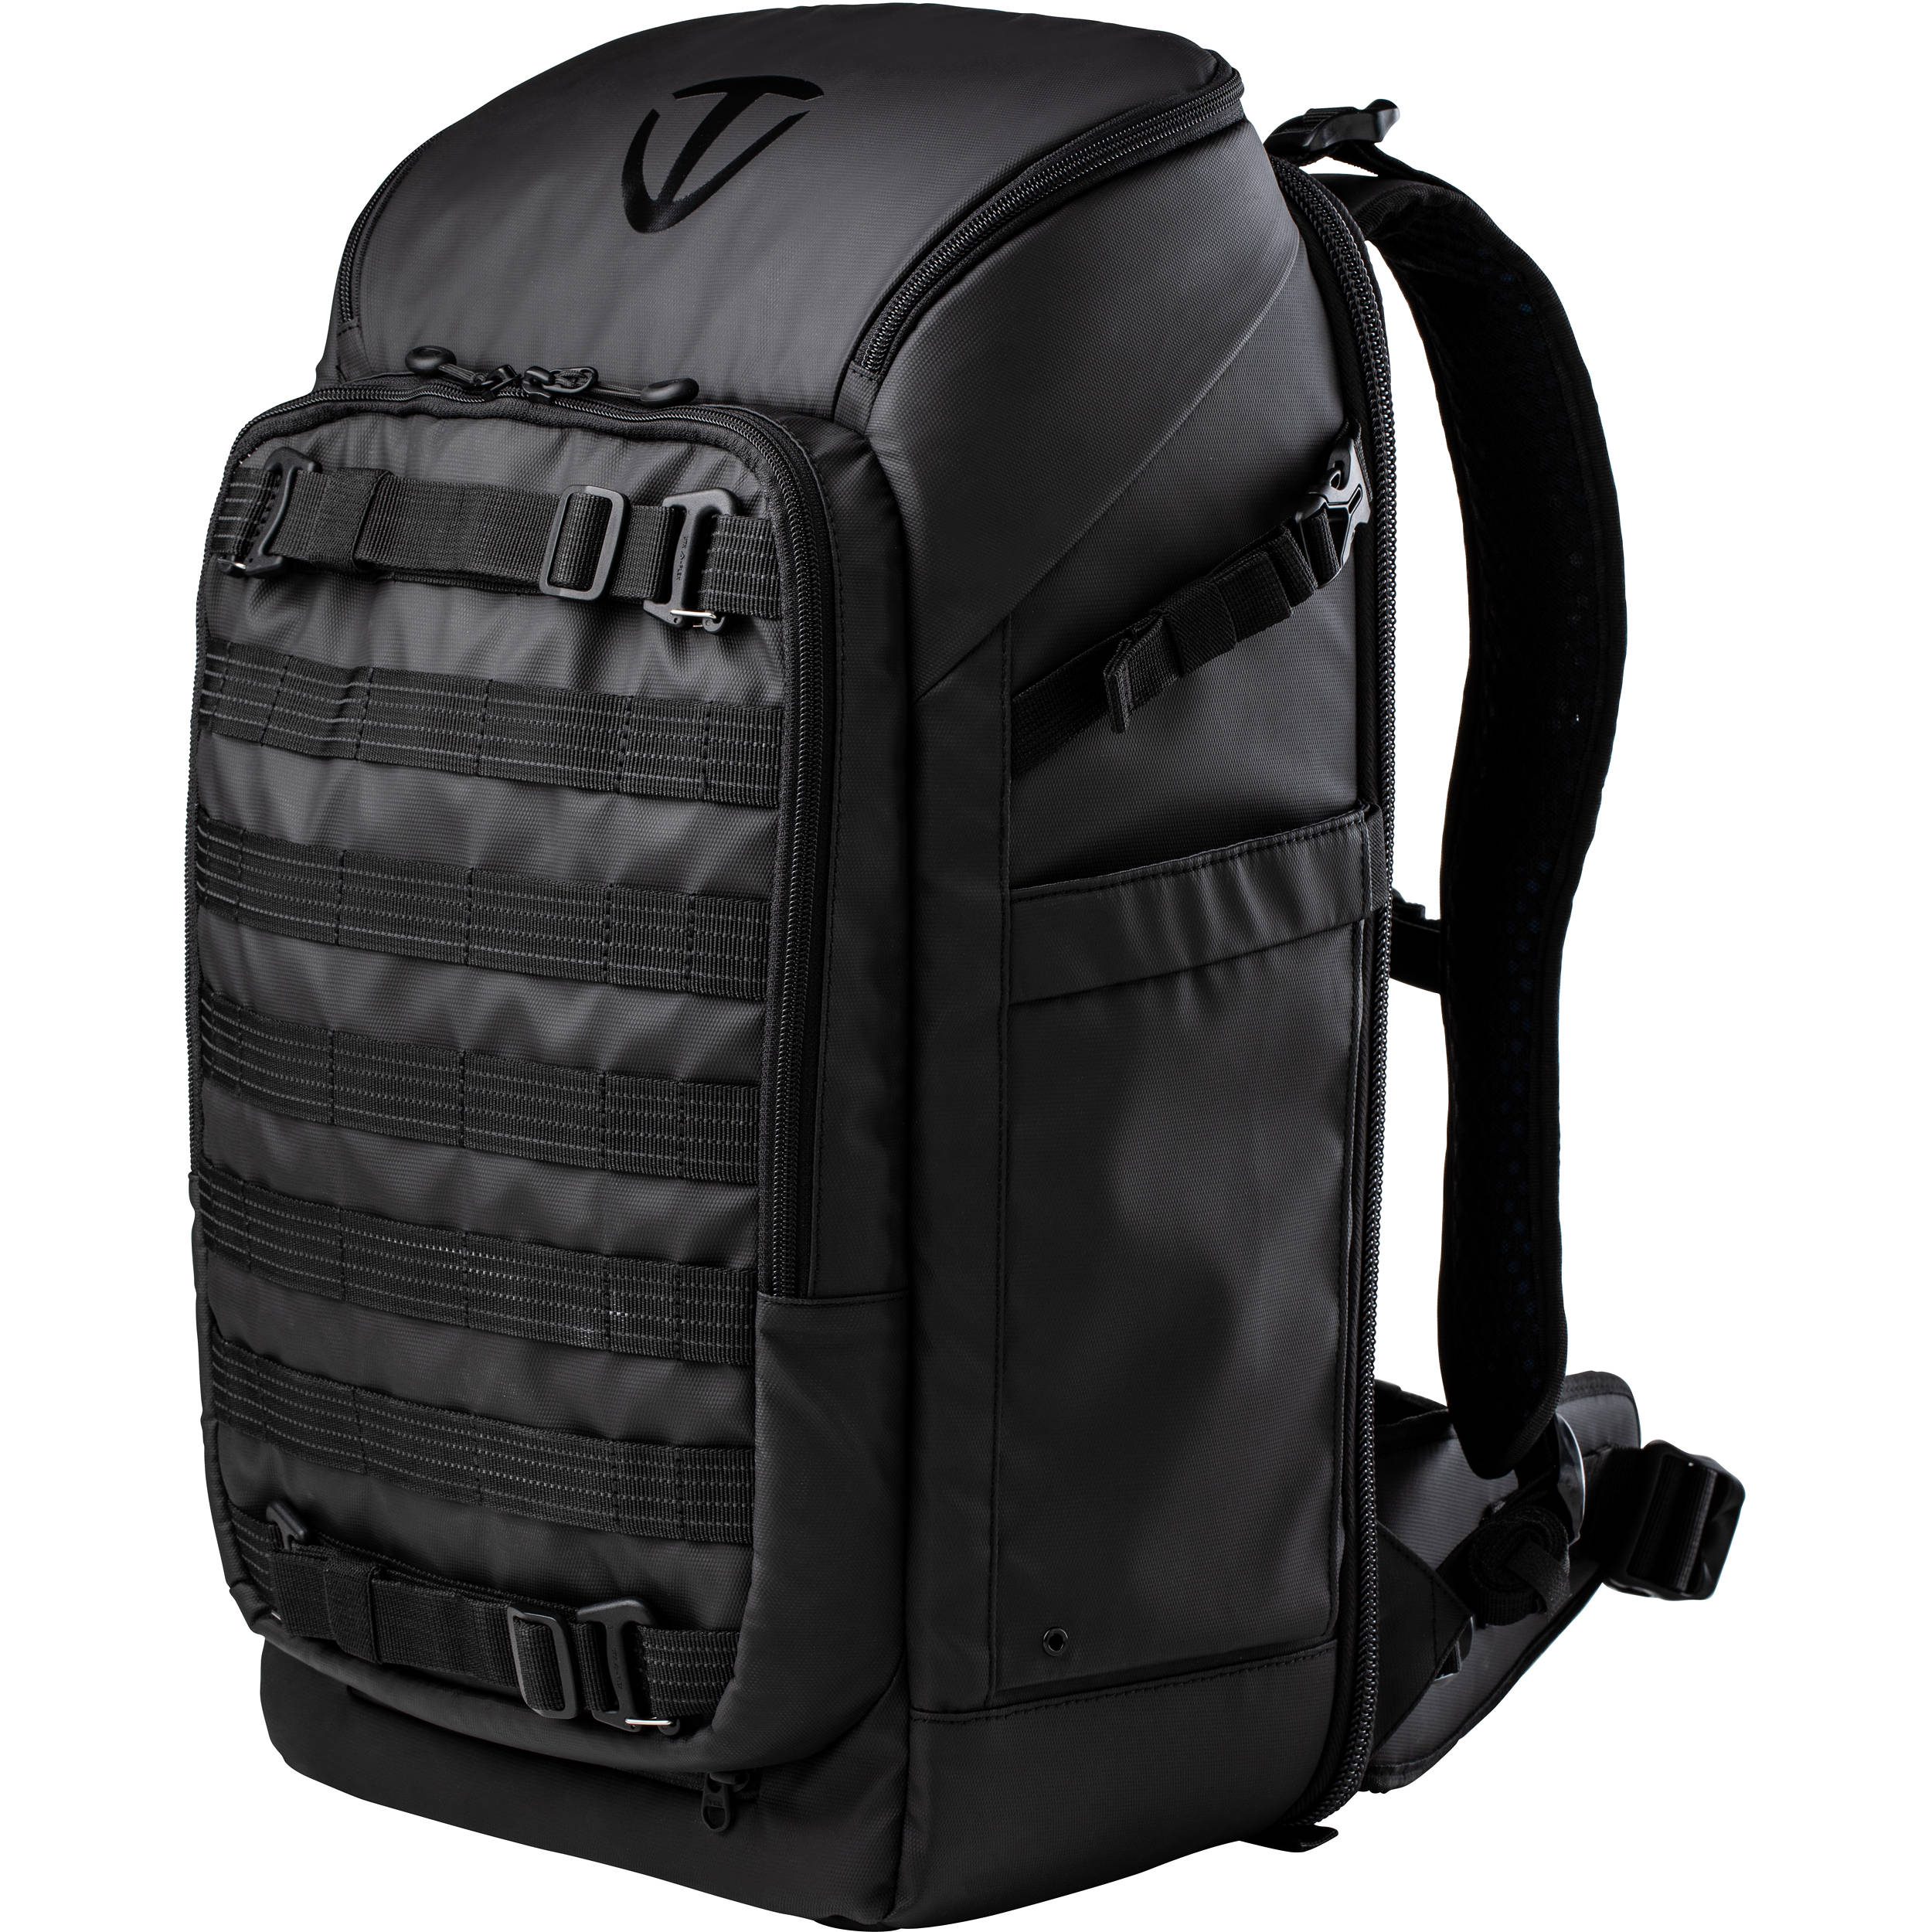 Tenba Axis 24L Backpack (Black) 637-702 B&H Photo Video on evolve review, grand theft auto v review, assassin's creed unity review, far cry 4 review, halo 4 review, binary domain review, escape dead island review, dead rising 3 review, the evil within review, playstation all-stars battle royale review, infamous second son review, comedy central review, battlefield 4 review, bloodborne review, bioshock infinite review, tomb raider review, crysis 3 review, thief review,